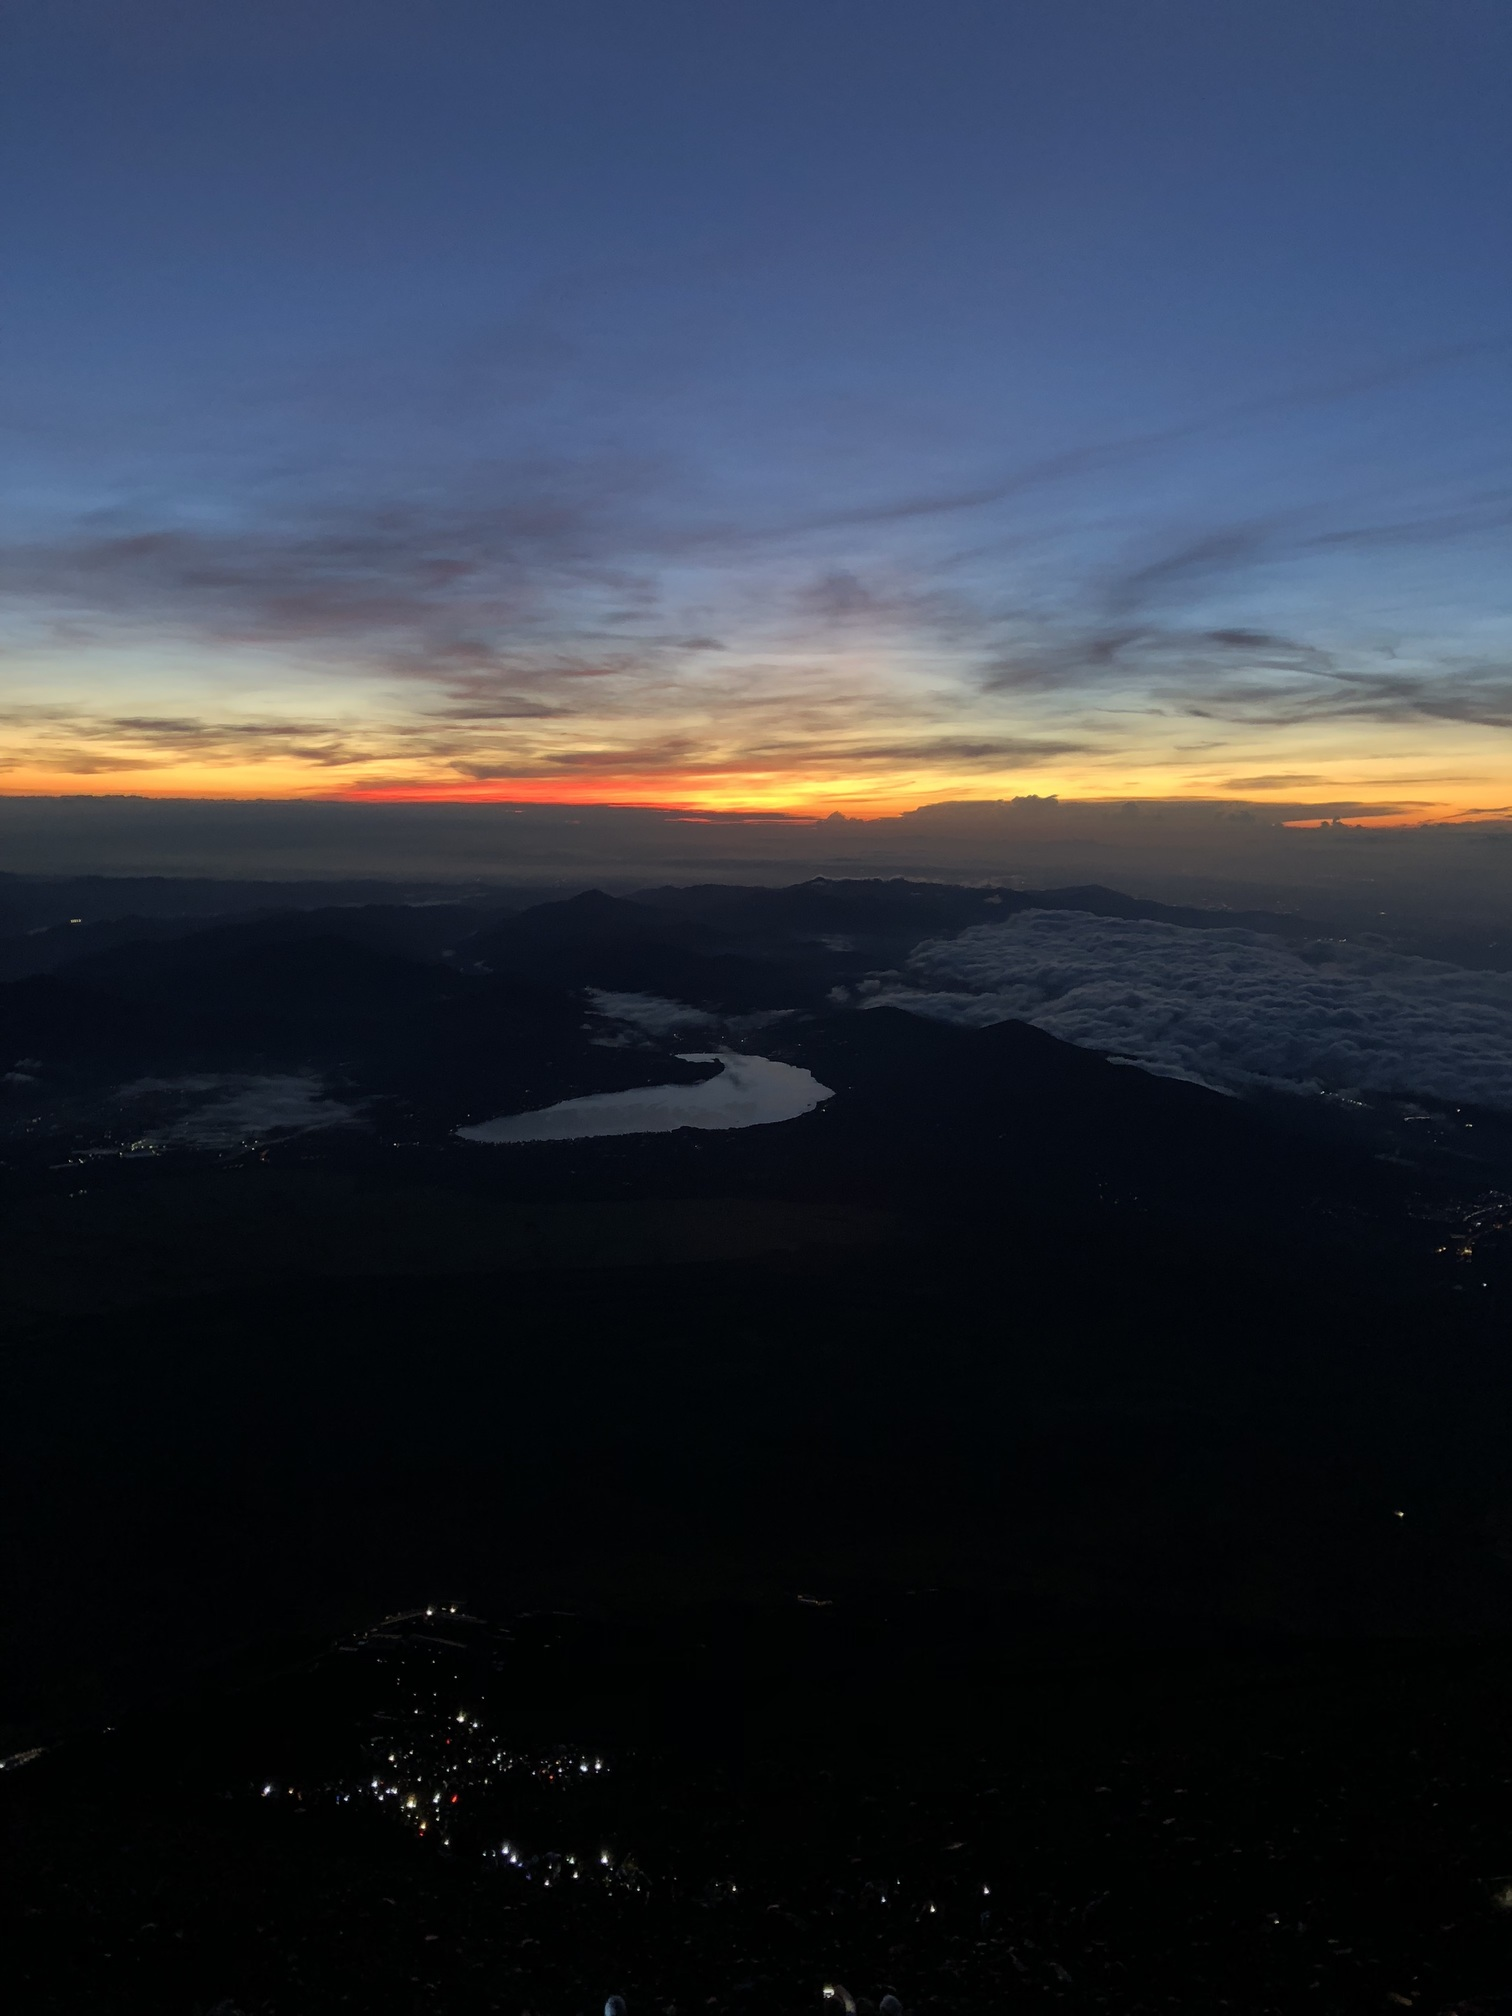 A picture of the sky at dusk as viewed from Mt. Fuji